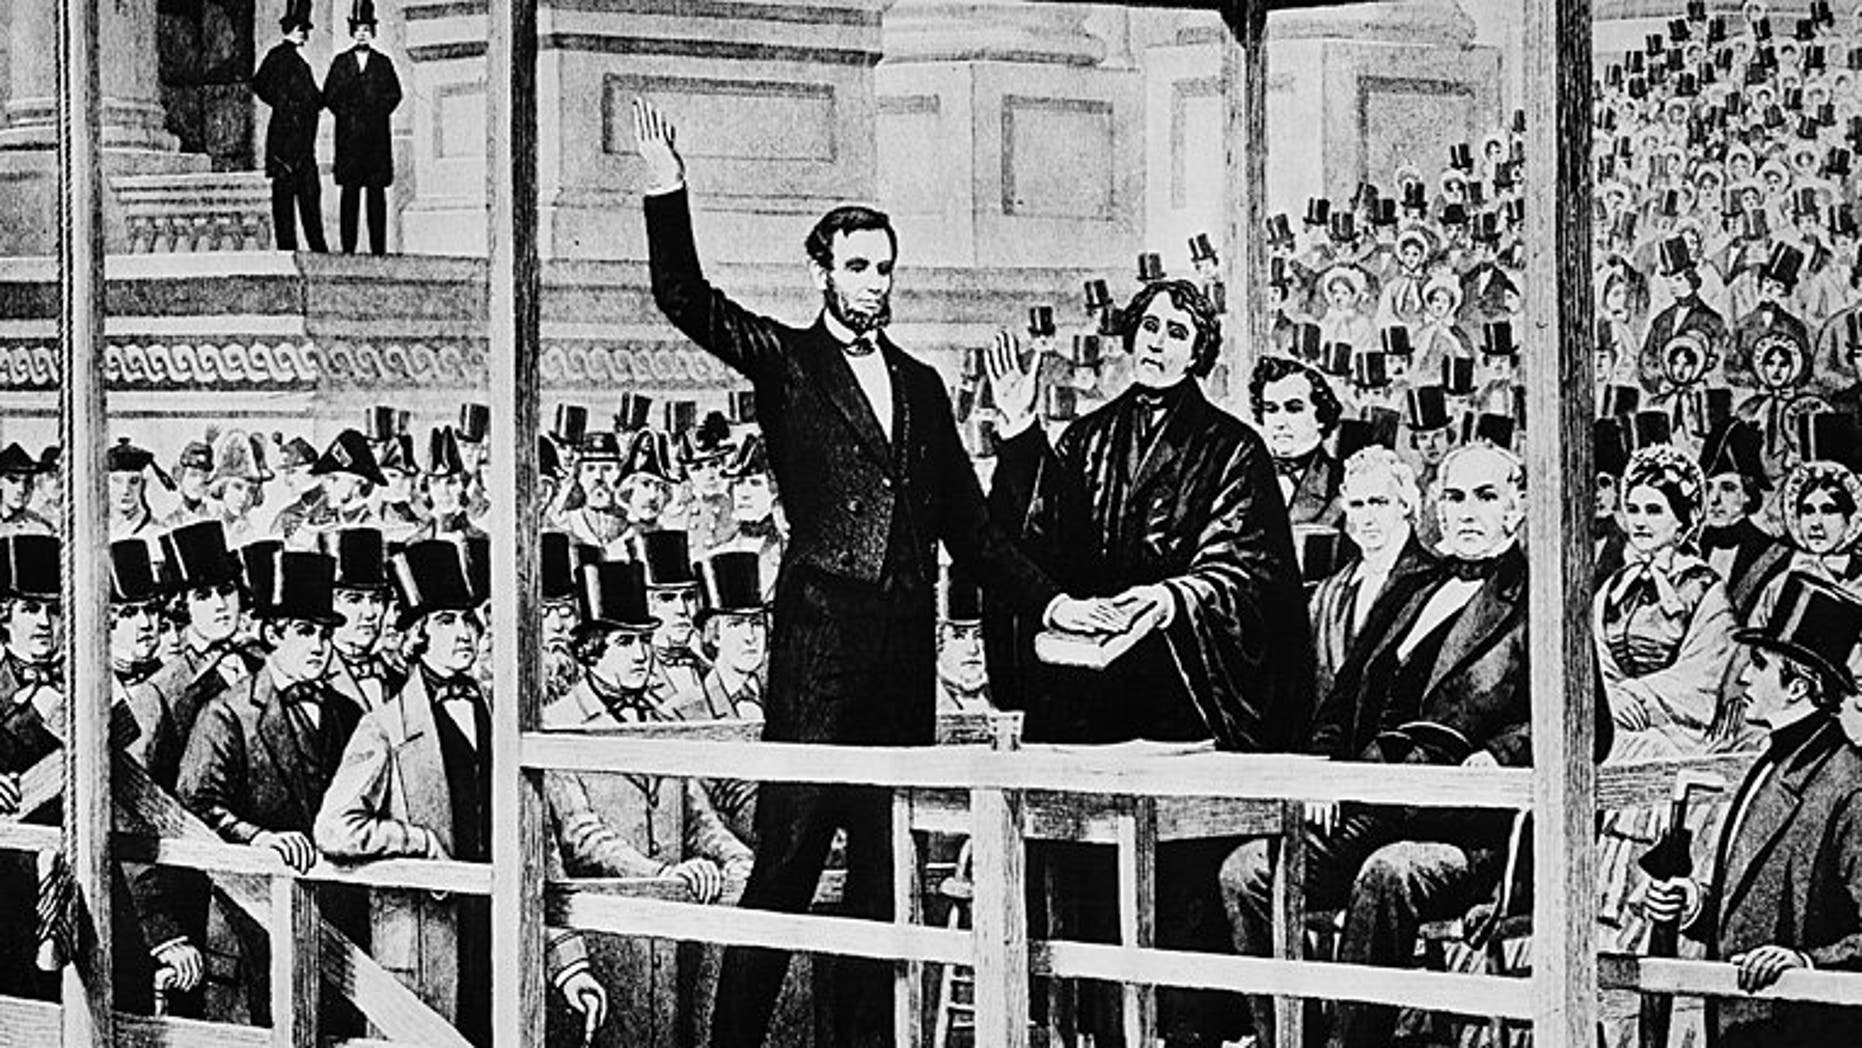 This drawing shows Abraham Lincoln taking the oath of office as the 16th president of the United States in front of the U.S. Capitol in Washington on March 4, 1861. AP PHOTO